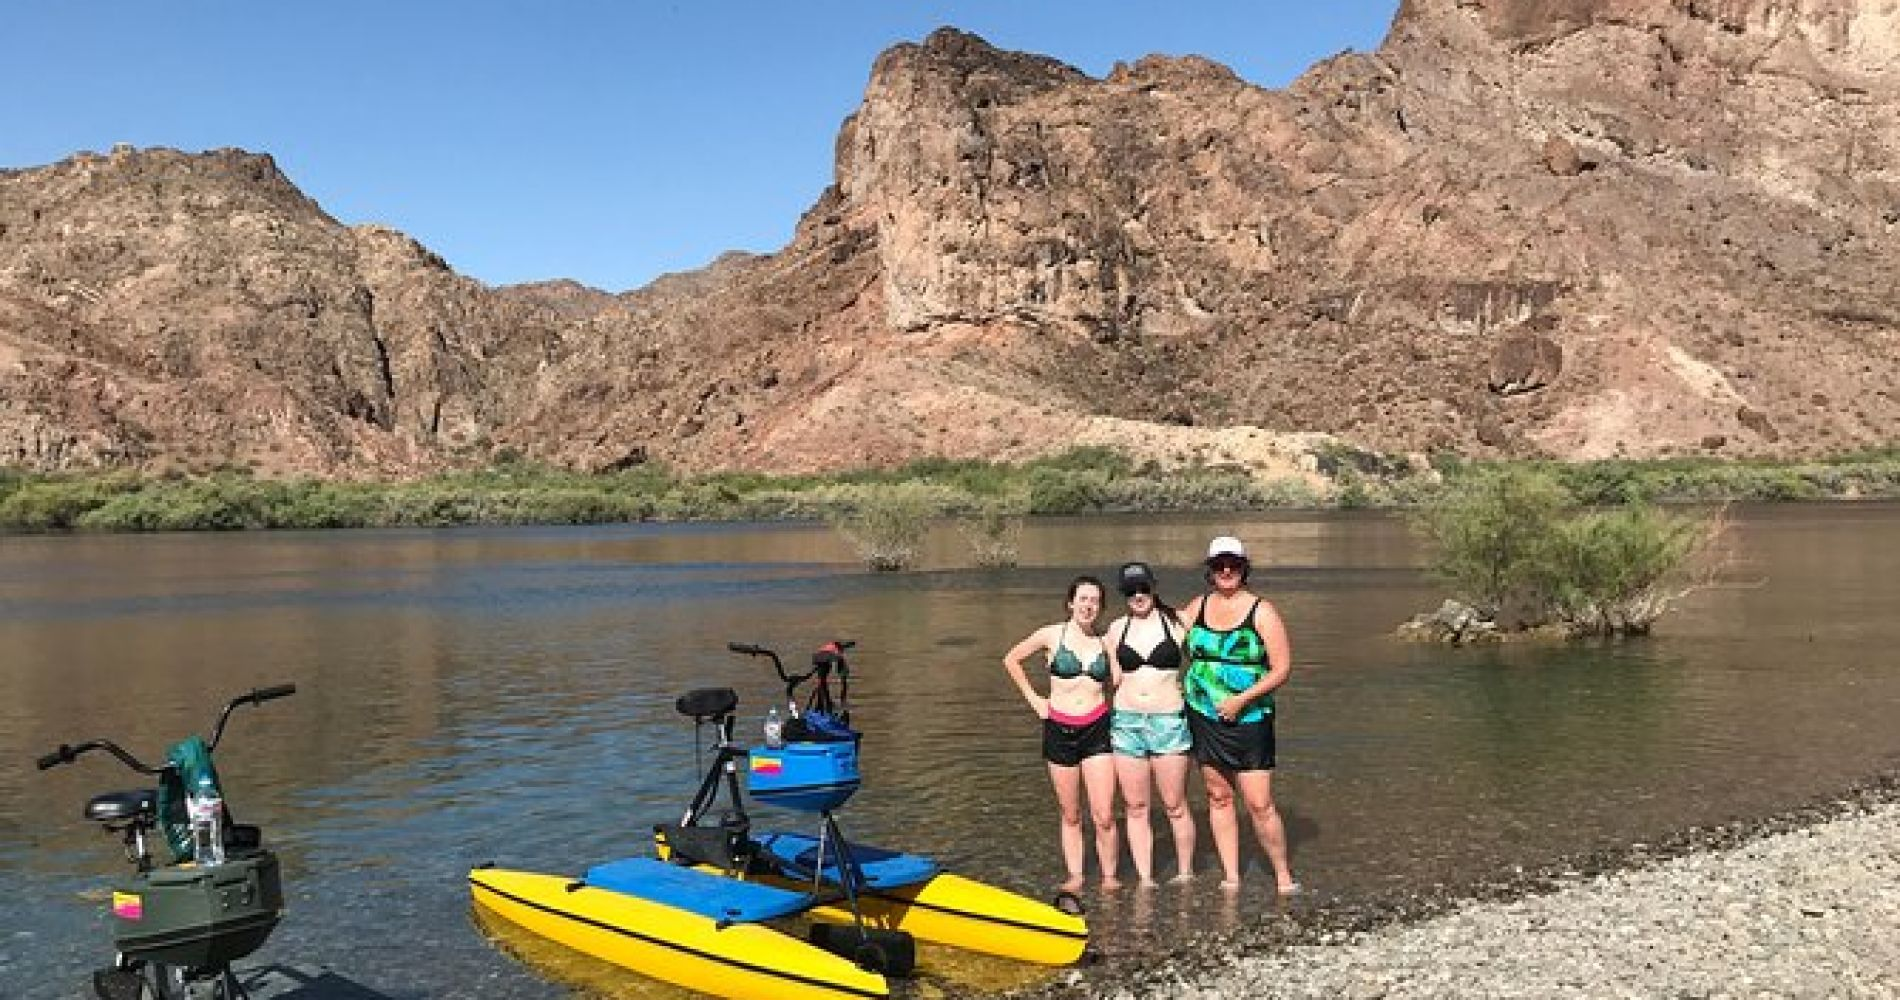 Half-Day HydroBike Adventure on the Colorado River